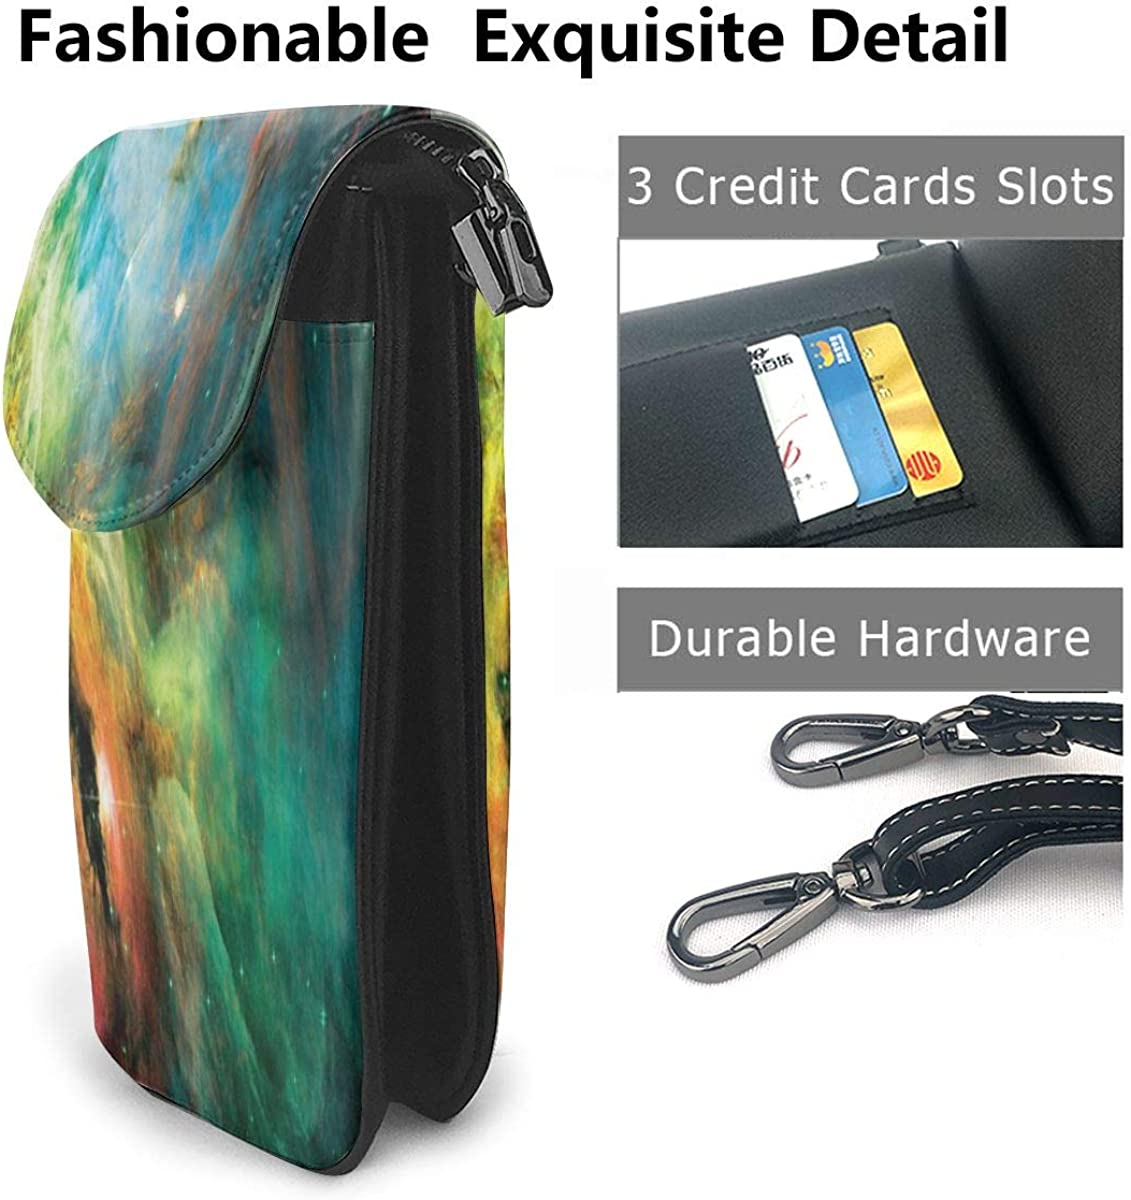 Cell Phone Purse Rainbow Orion Nebula Crossbody Bag Womens Lightweight Portable Small Wallet Waterproof PU Leather Mini Shoulder Bag Easy Care Phone Wallet For Shopping Date Hiking